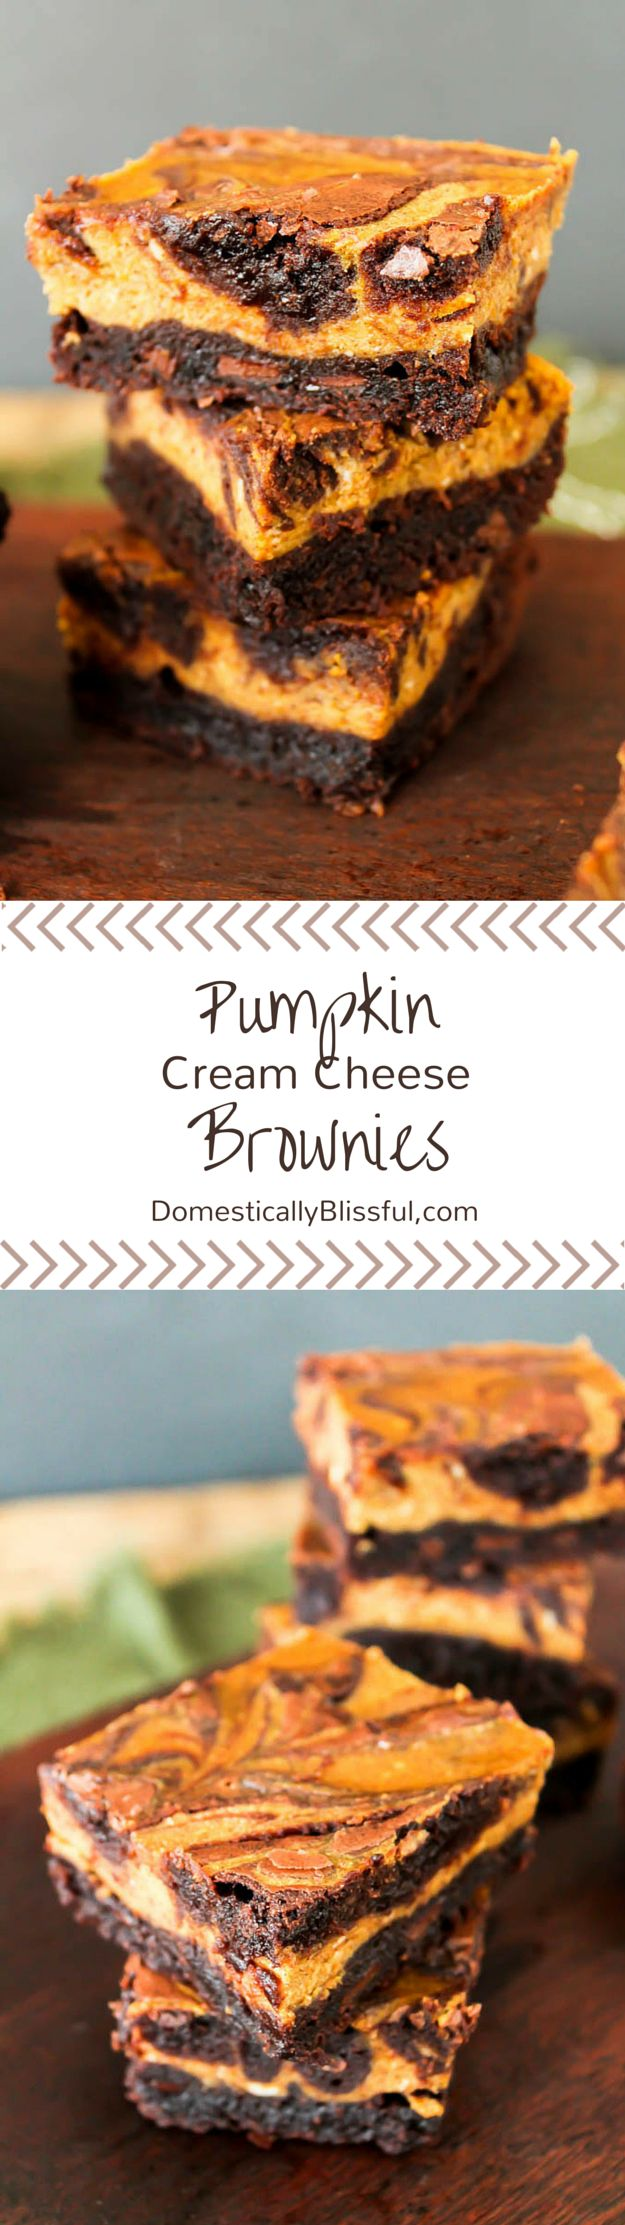 Pumpkin Cream Cheese Brownies |   http://domesticallyblissful.com/pumpkin-cream-cheese-brownies/